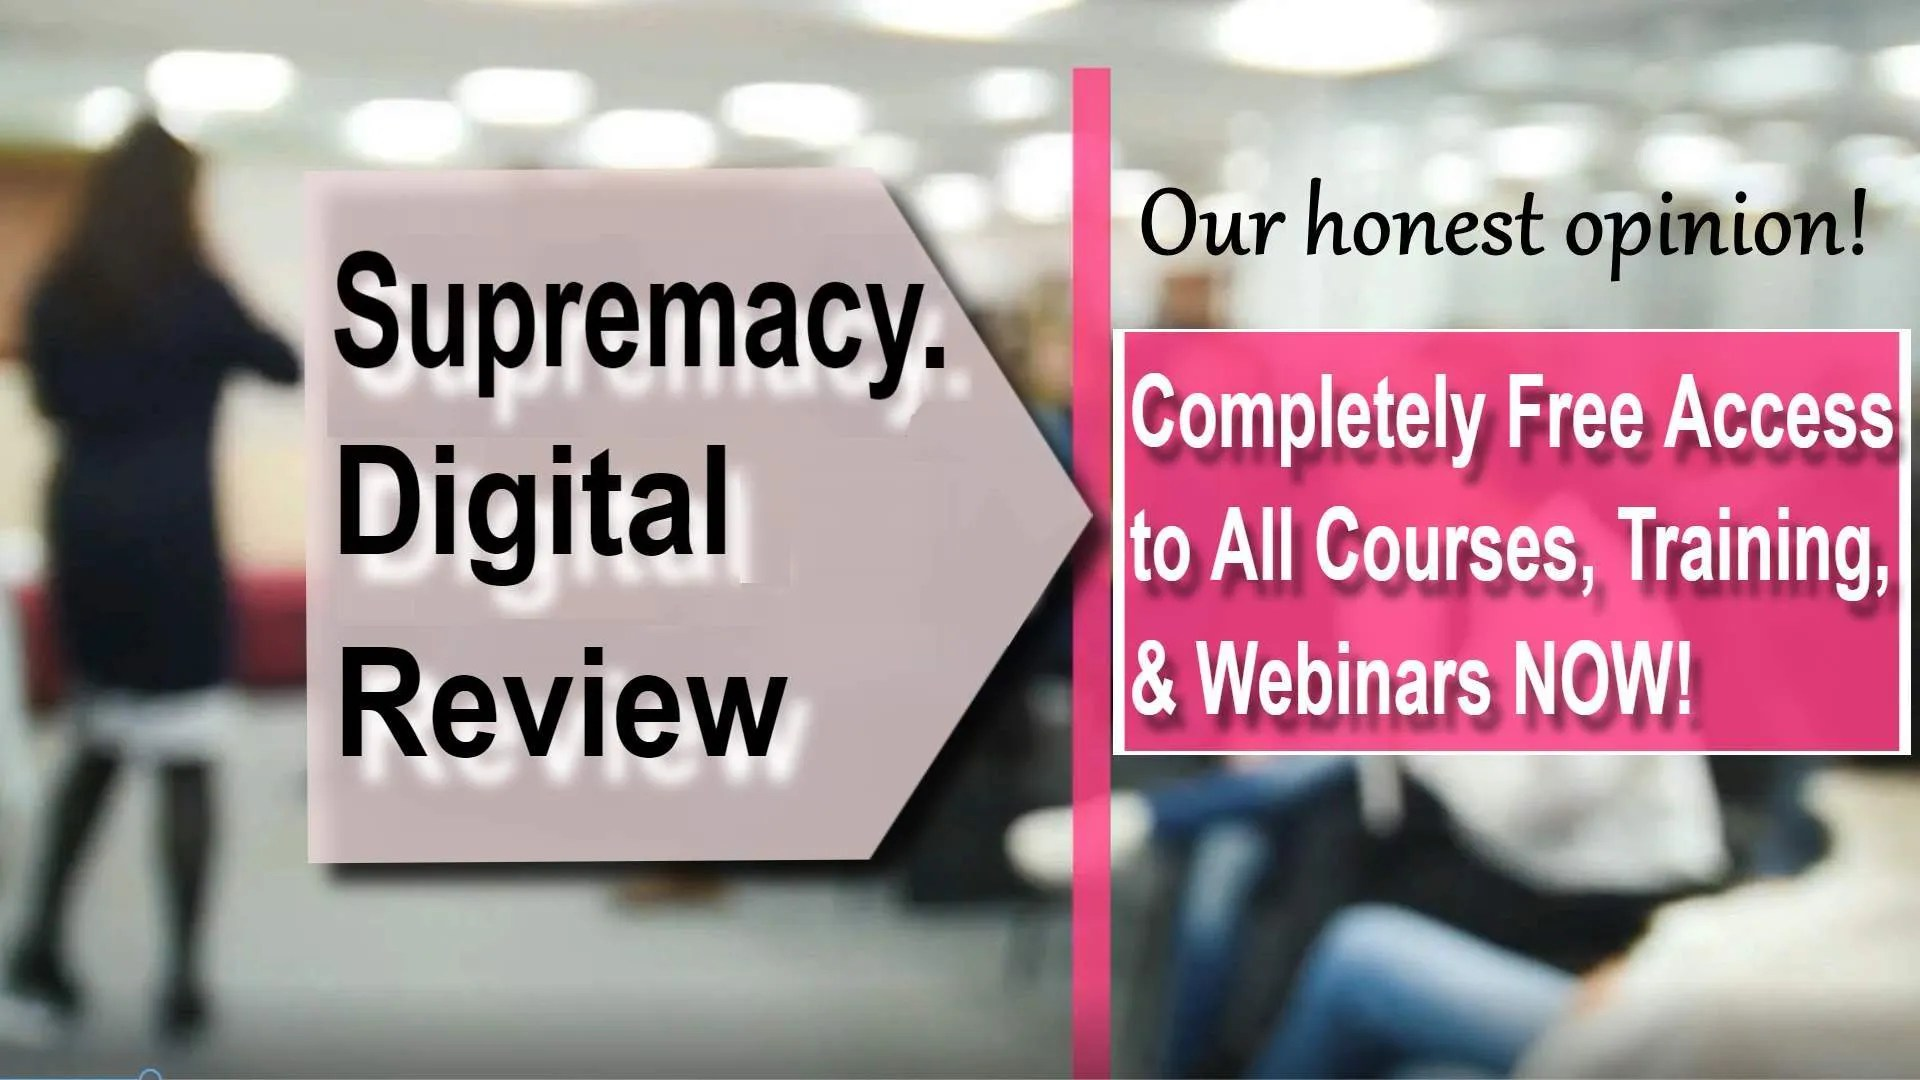 supremacy.digital review